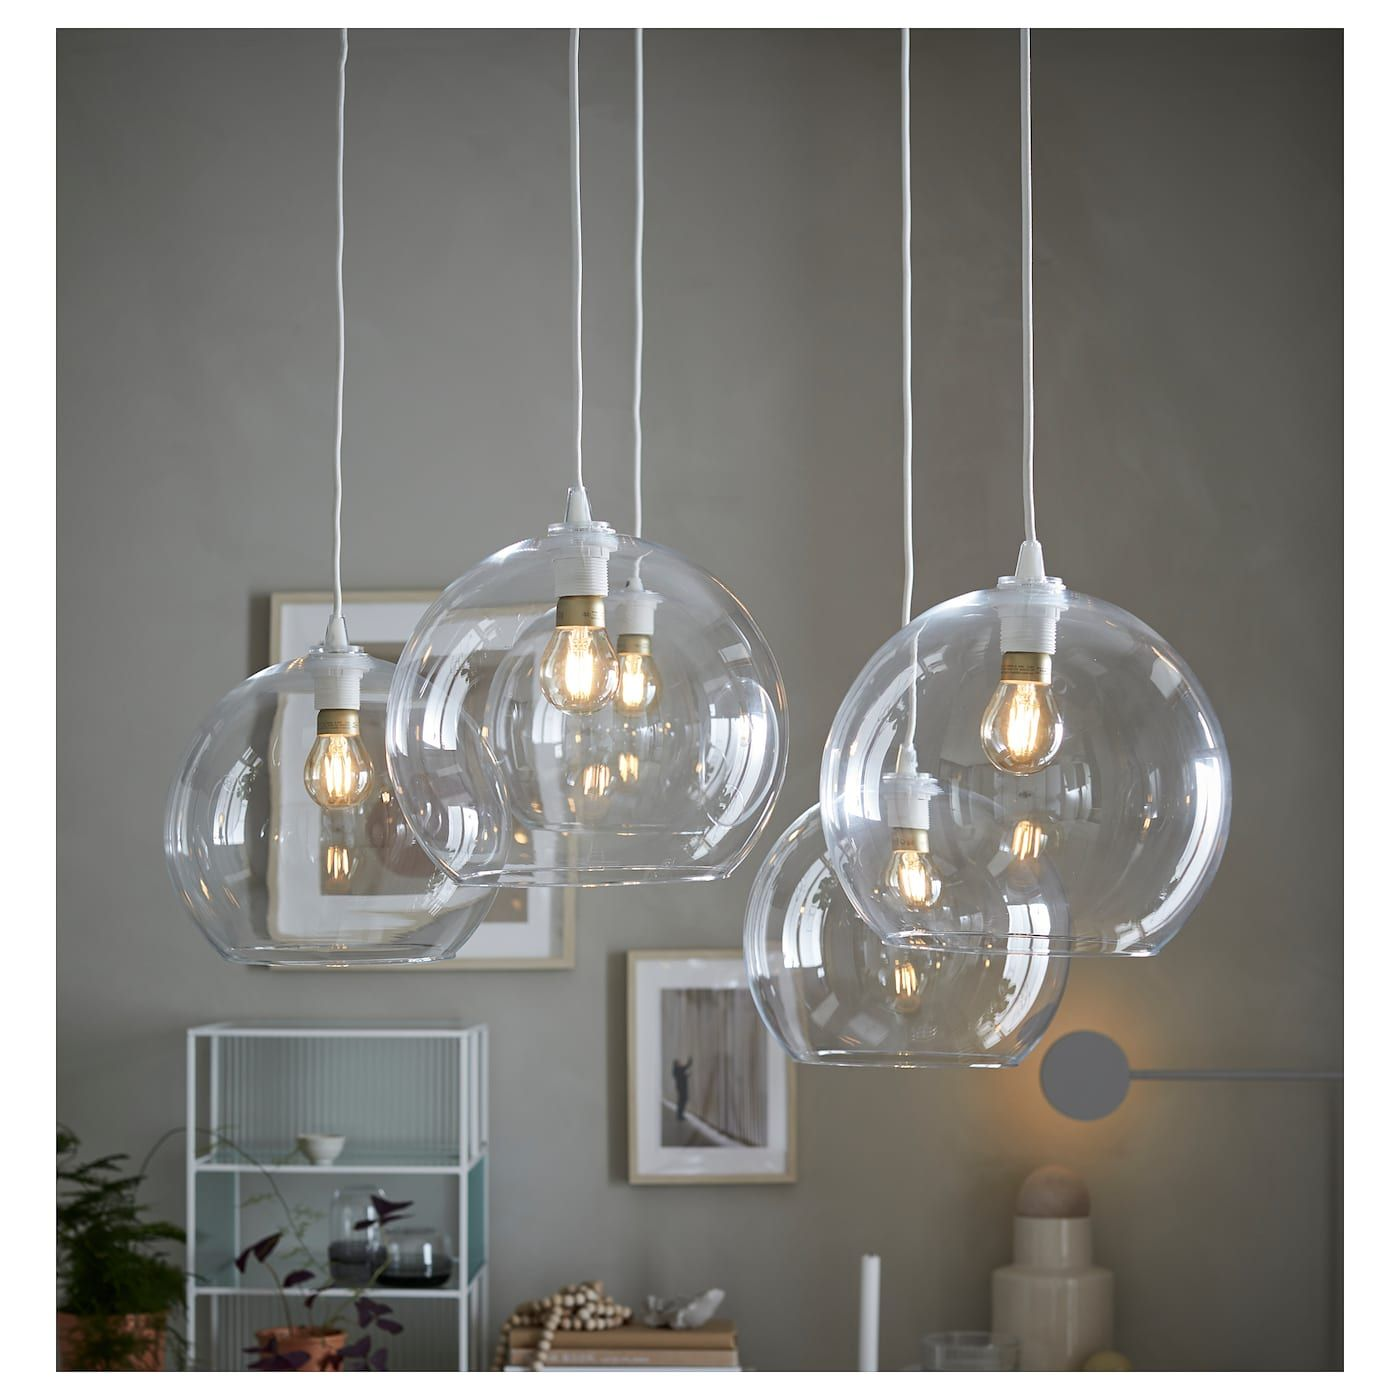 Jakobsbyn Abat Jour Suspension Verre Transparent Ikea Pendant Lamp Shade Pendant Lamps Bedroom Glass Pendant Lamp